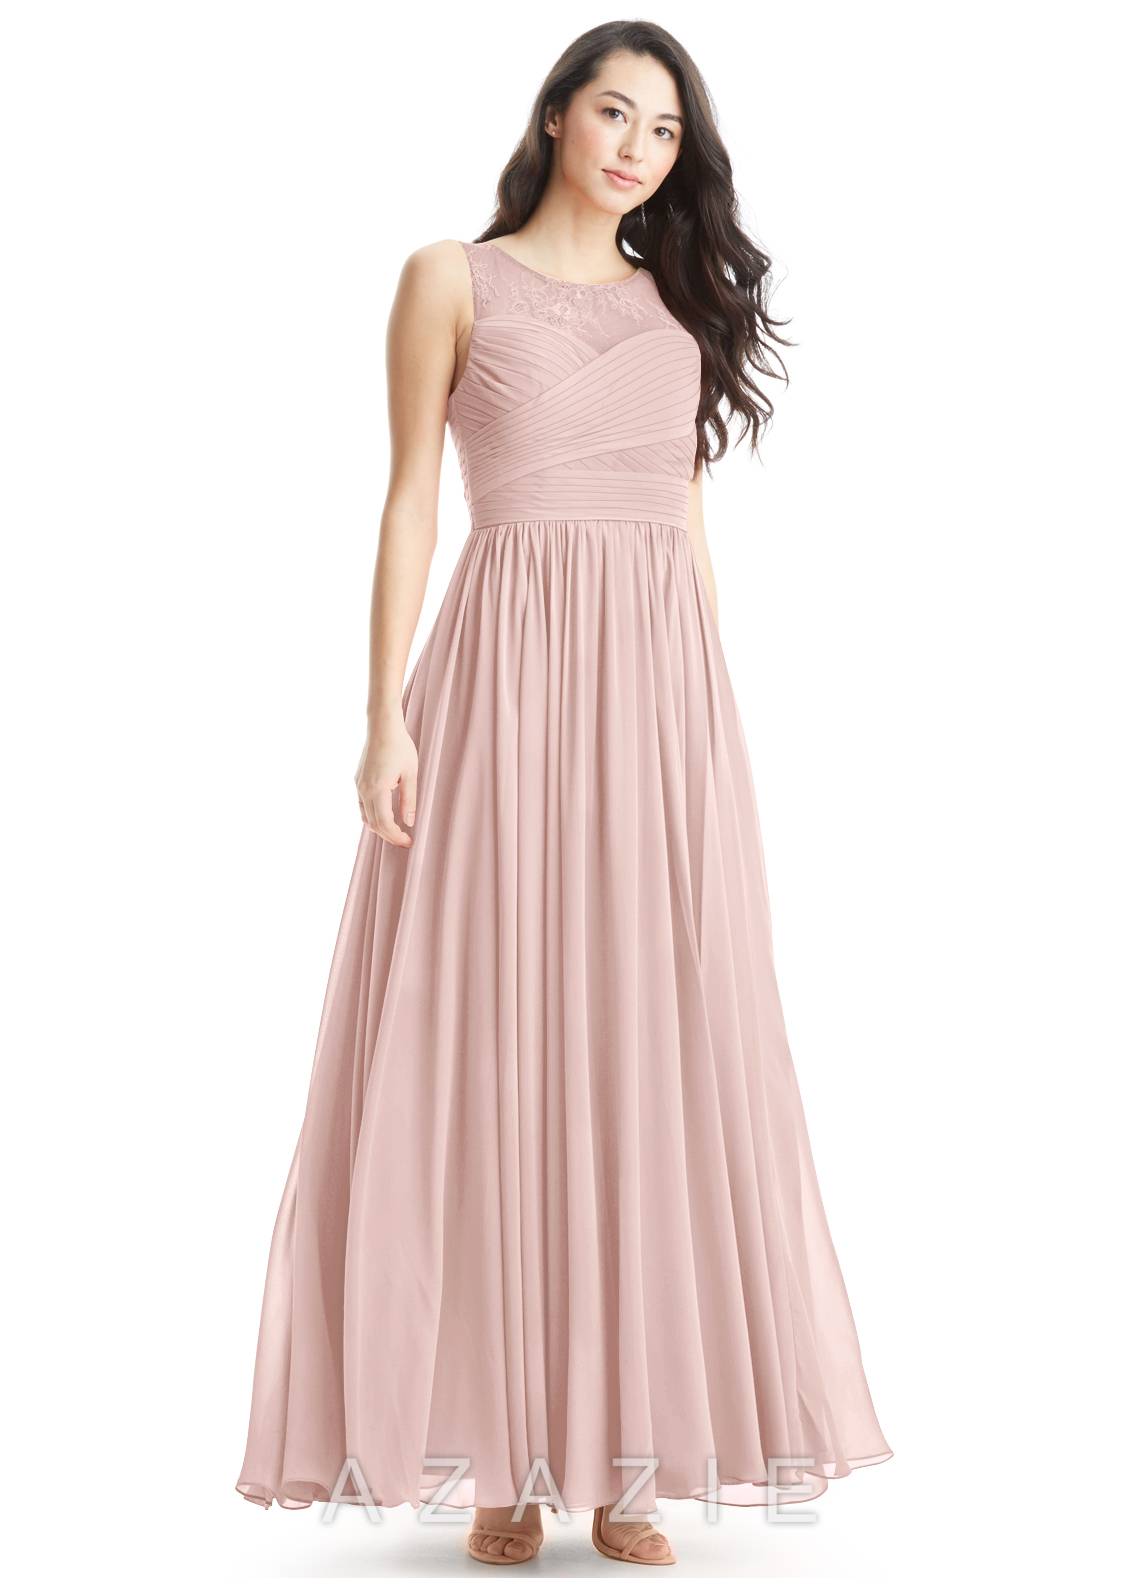 3a1a9a220ea3 Azazie Aliya Bridesmaid Dress | Azazie